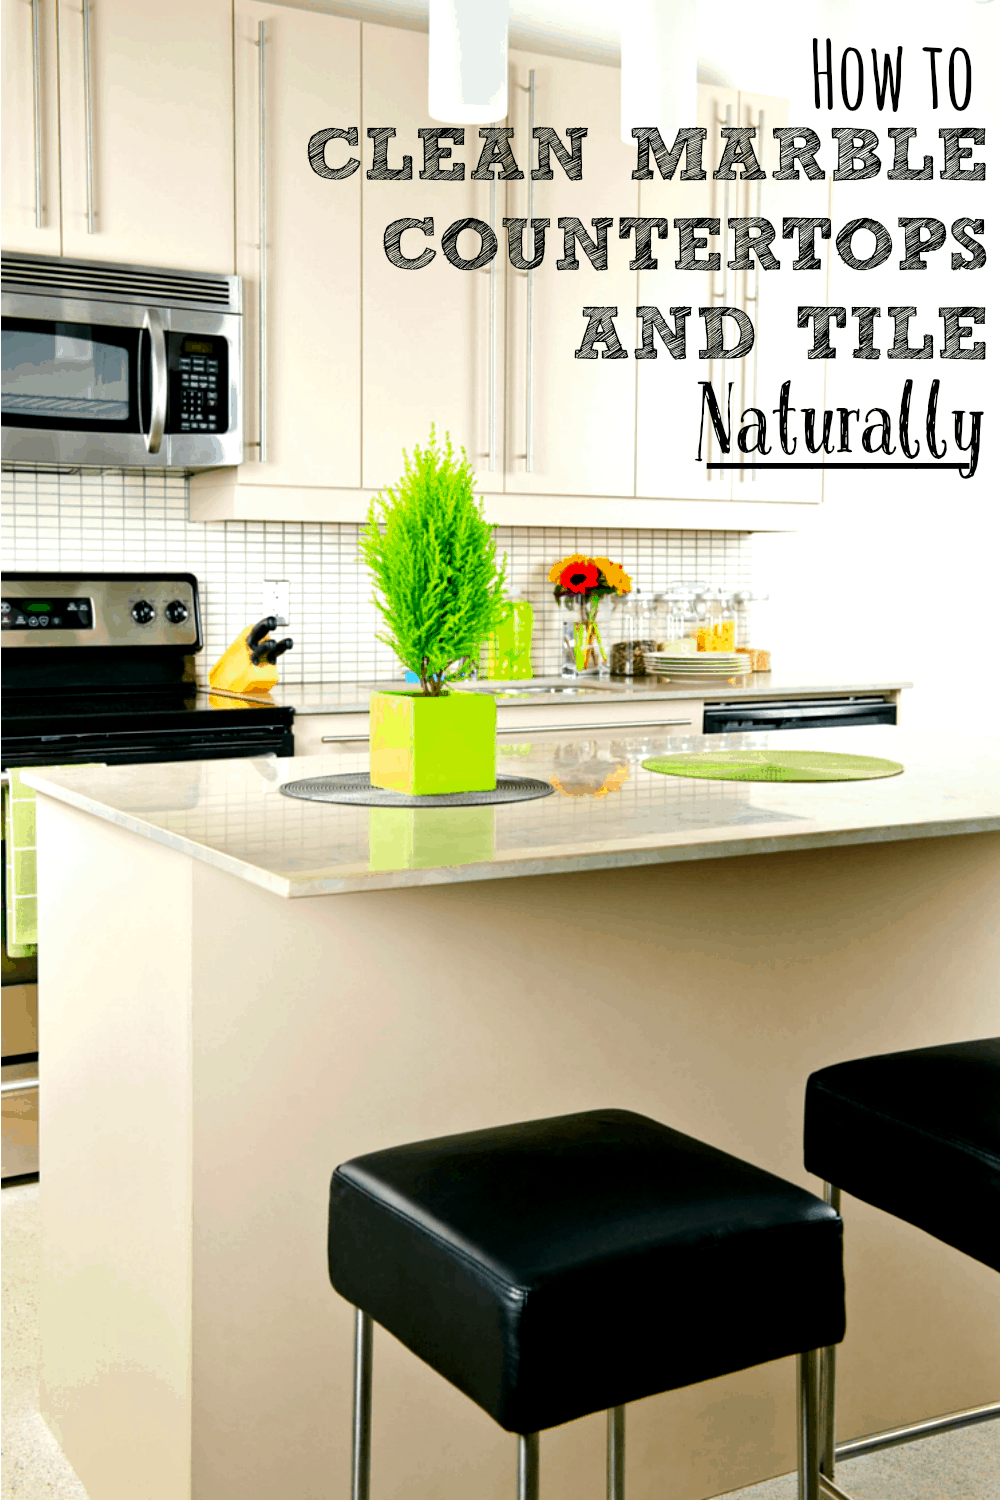 Marble Counters And Tiles Are Gorgeous, But Most Homemade Cleaners Can  Damage Them. This